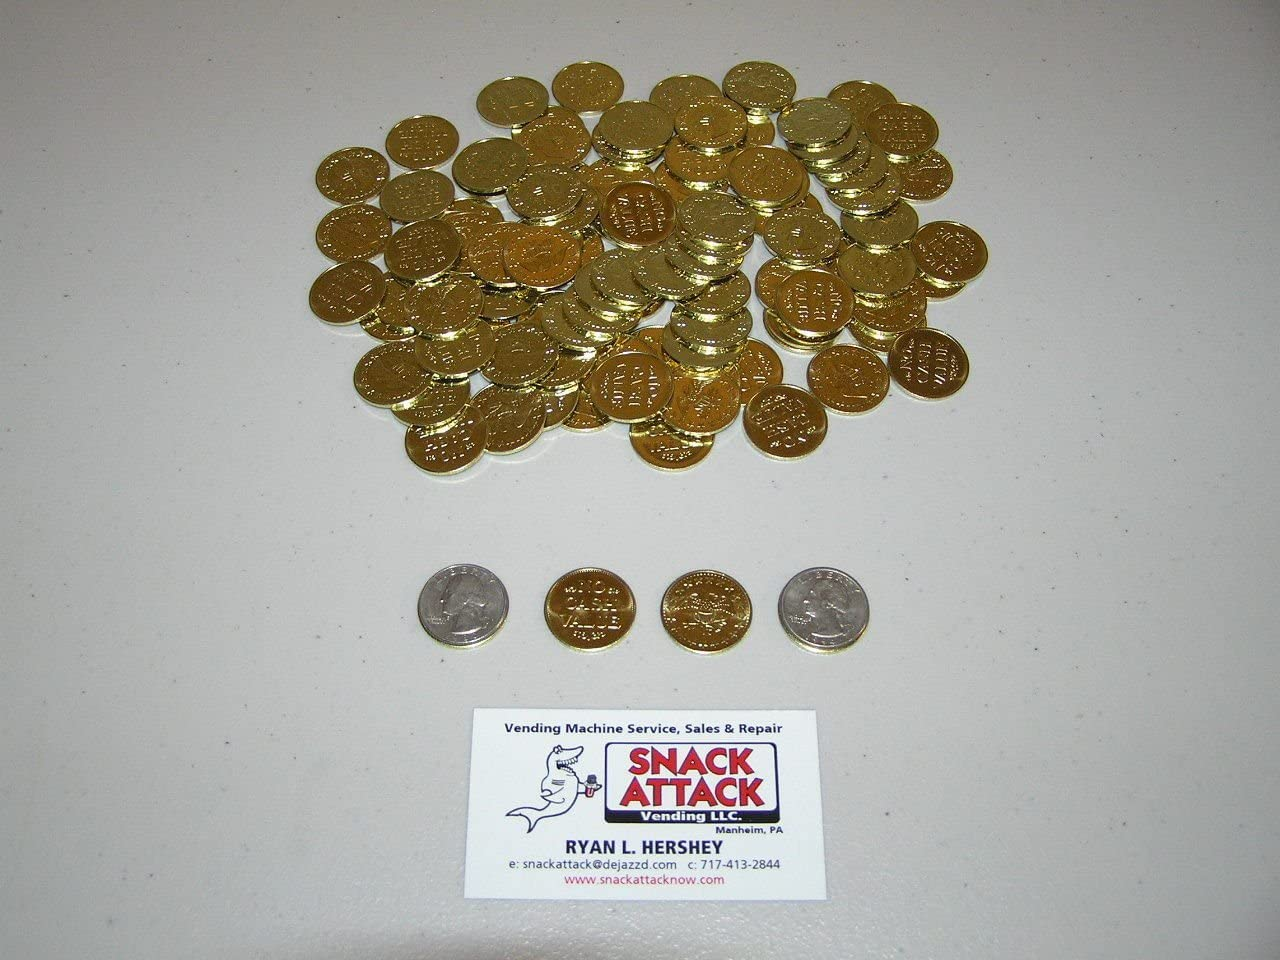 100 Amusement Vending Machine 0.984 Tokens Brass Department store Coins - Pl or Product